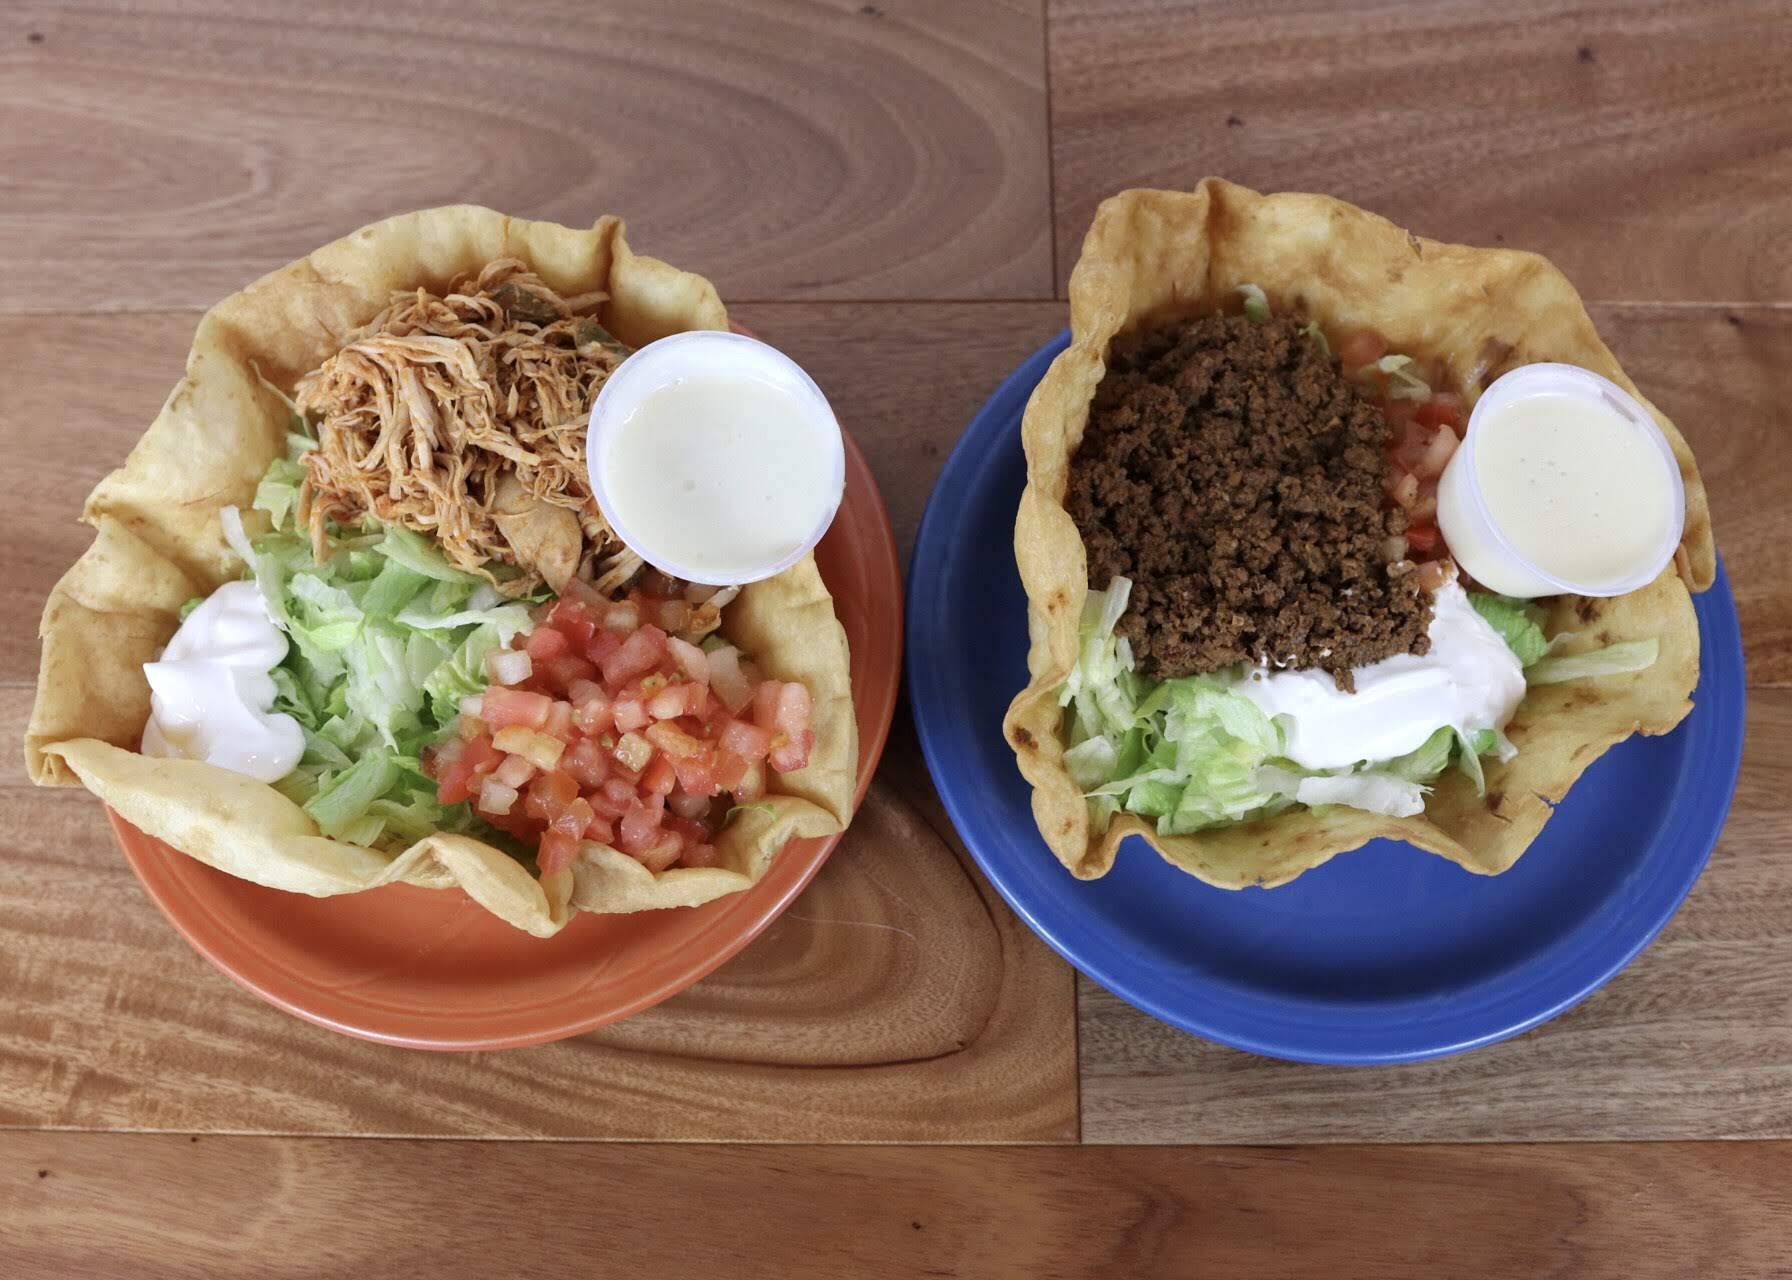 Two taco salad bowls side by side filled with pulled pork and beef with lettuce, tomatoes and sour cream